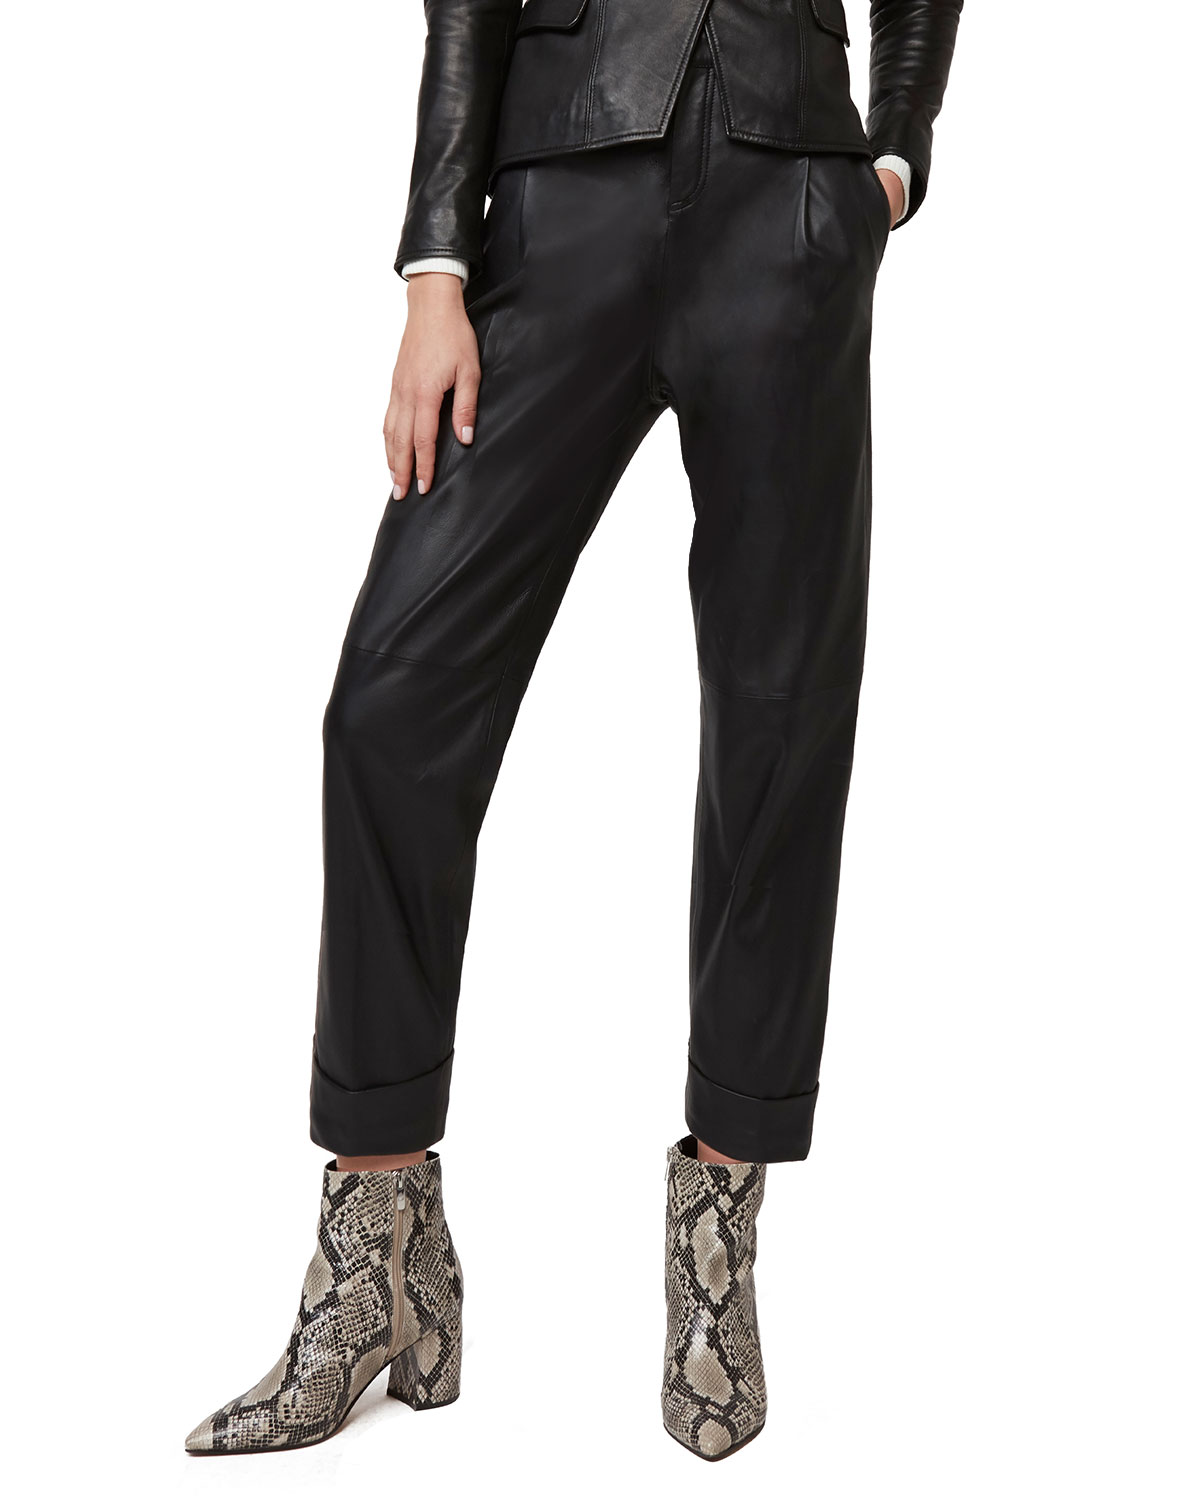 Bianca High-Waist Leather Trousers